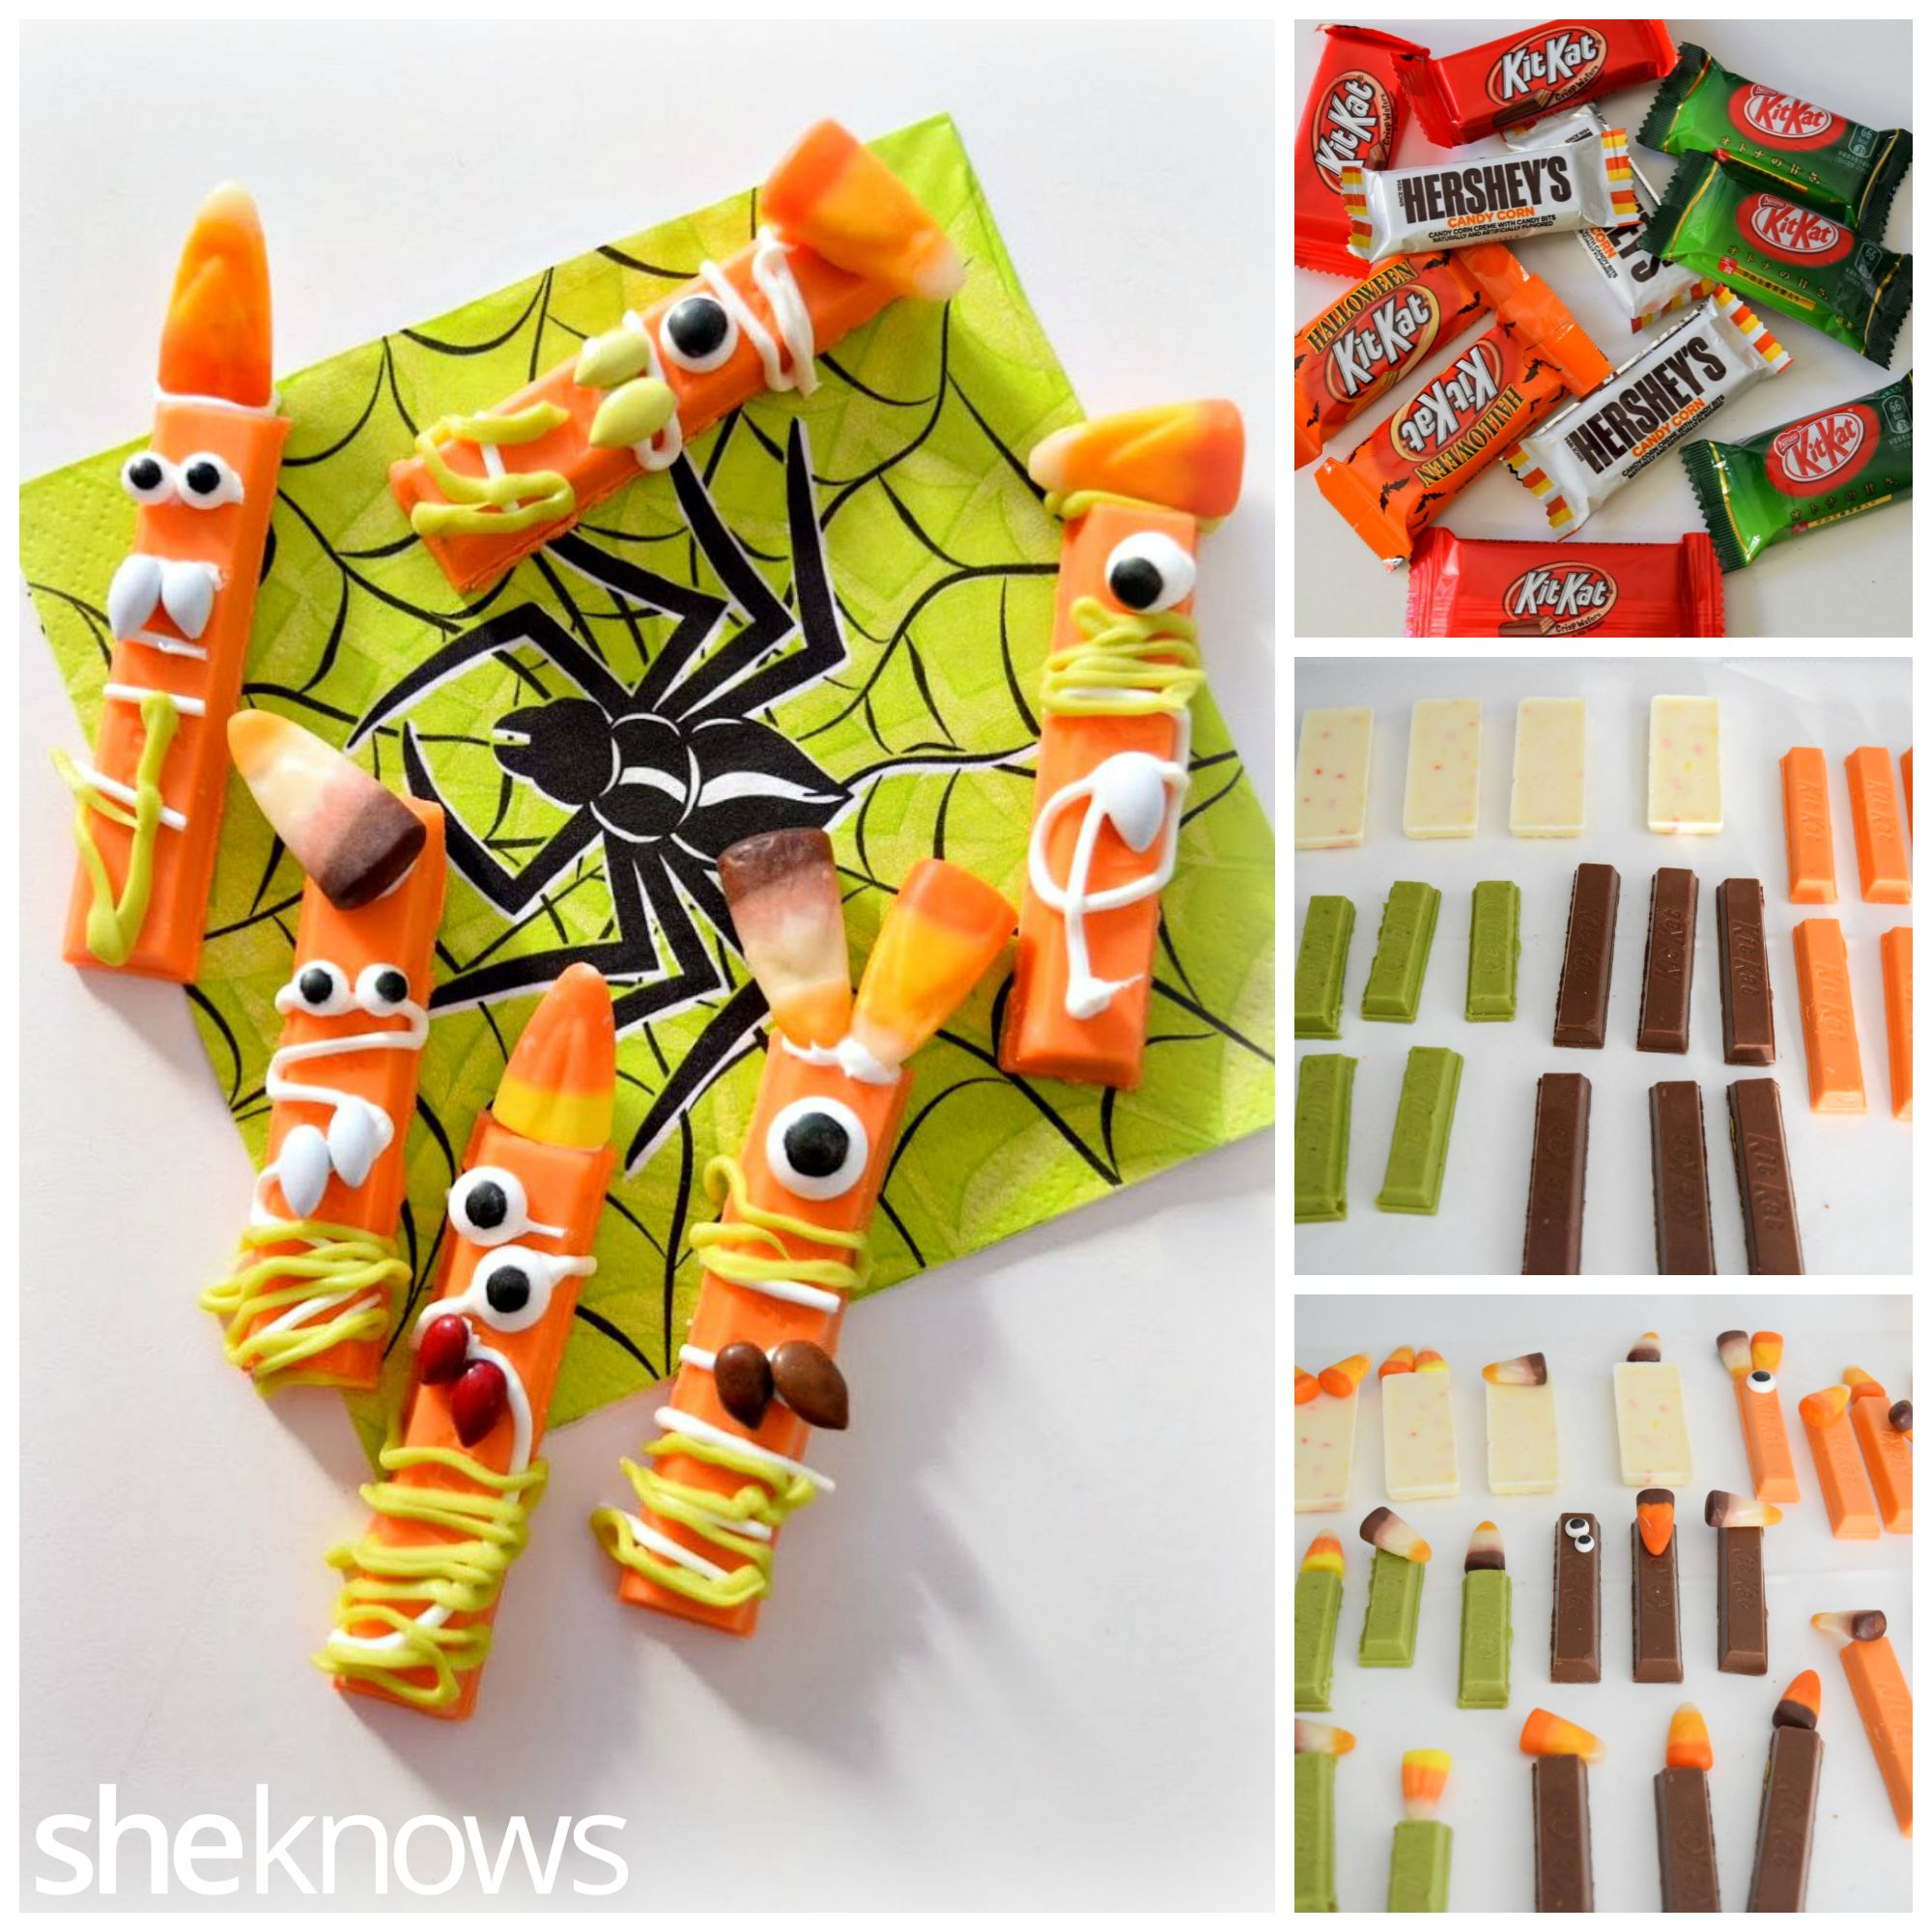 Candy Kit Kat Monsters